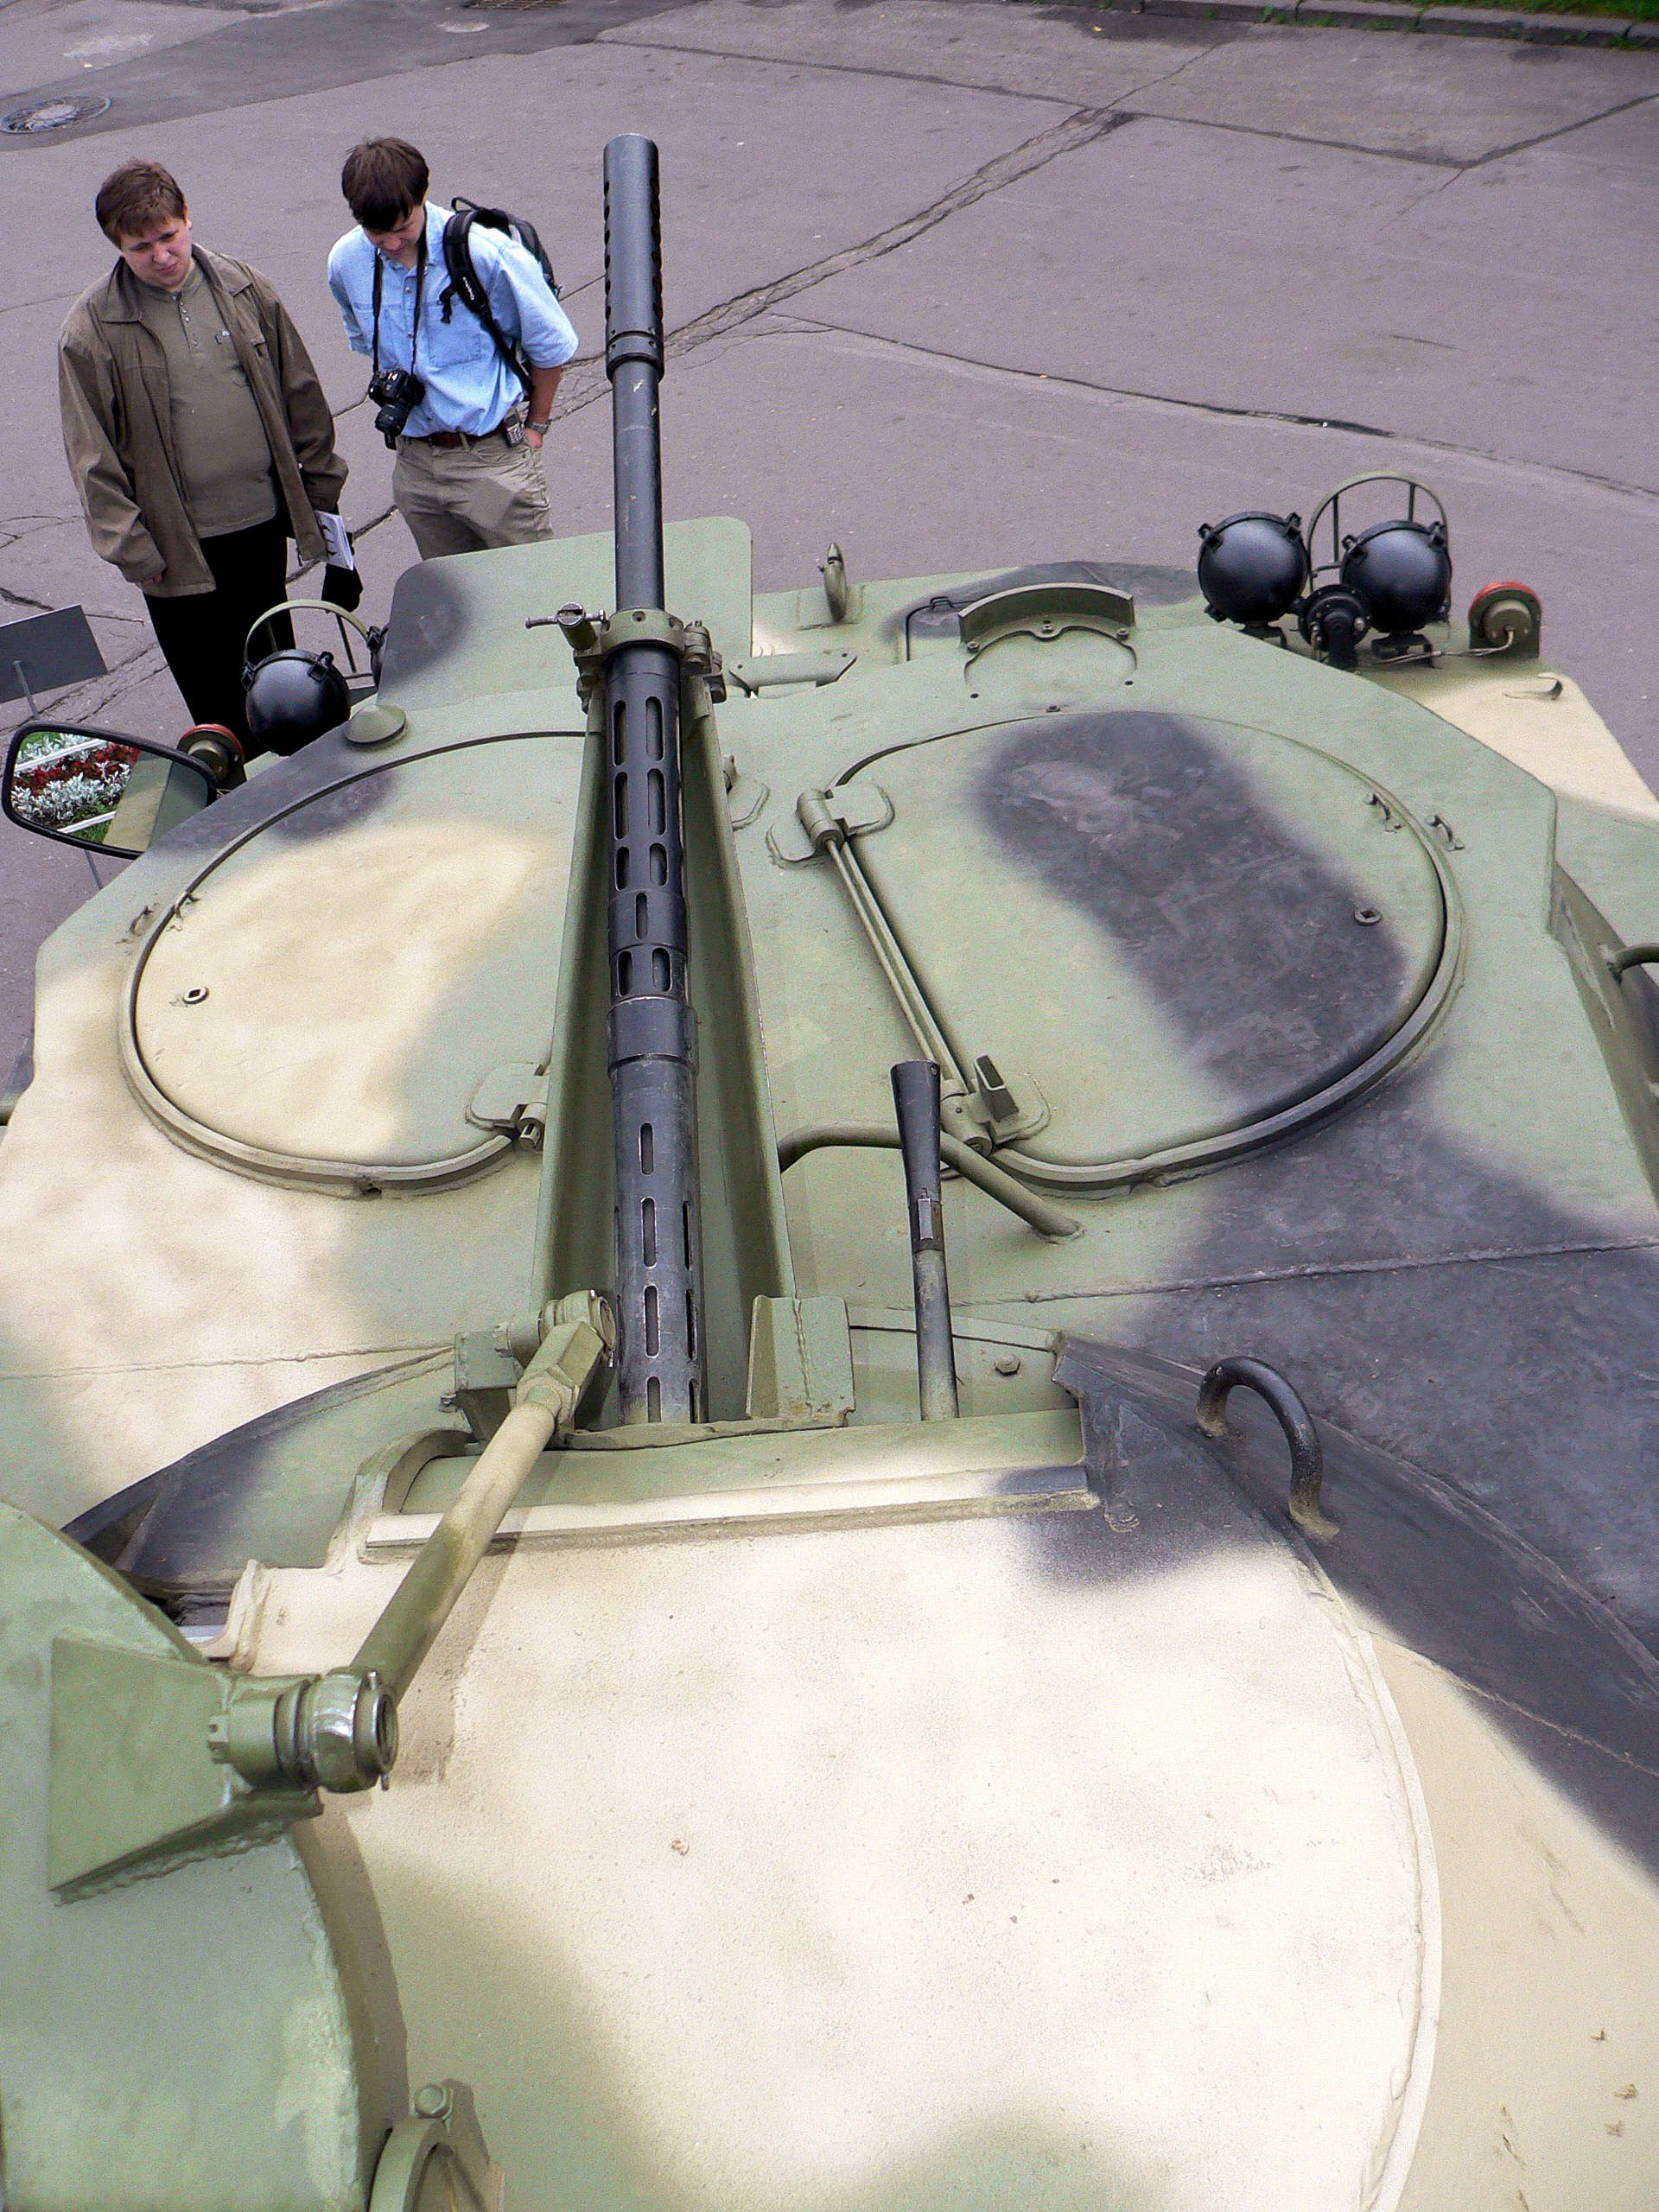 BMP-1/BMP-2 in Russian Army - Page 5 Brdm-2_w_ags-17_076_of_100